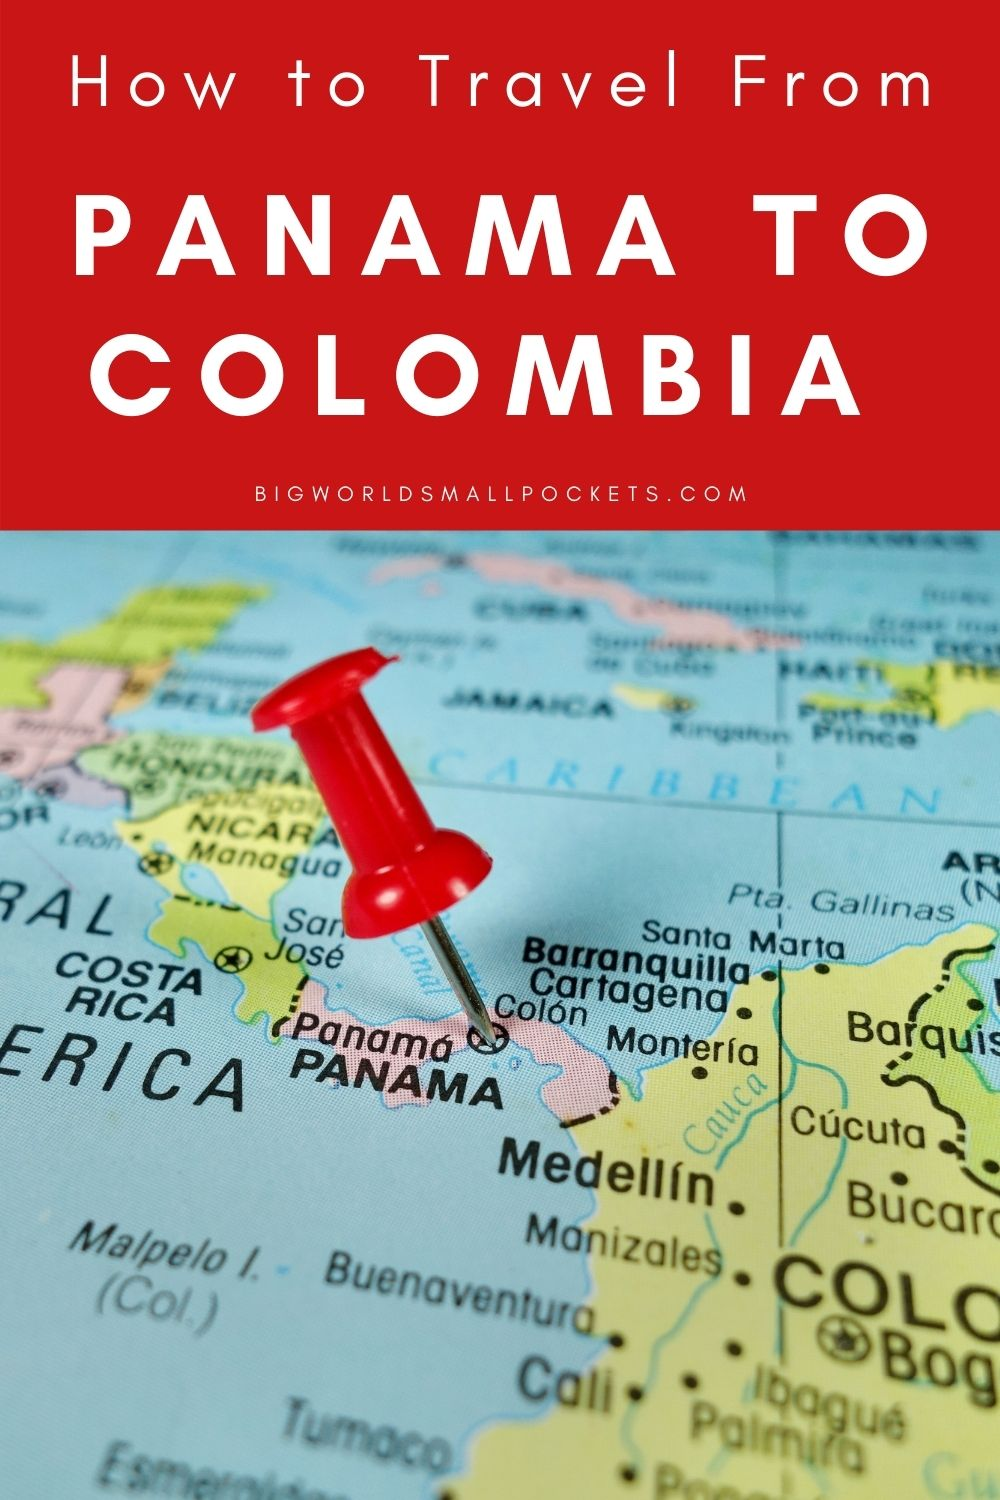 How to Cheaply Travel From Panama to Colombia